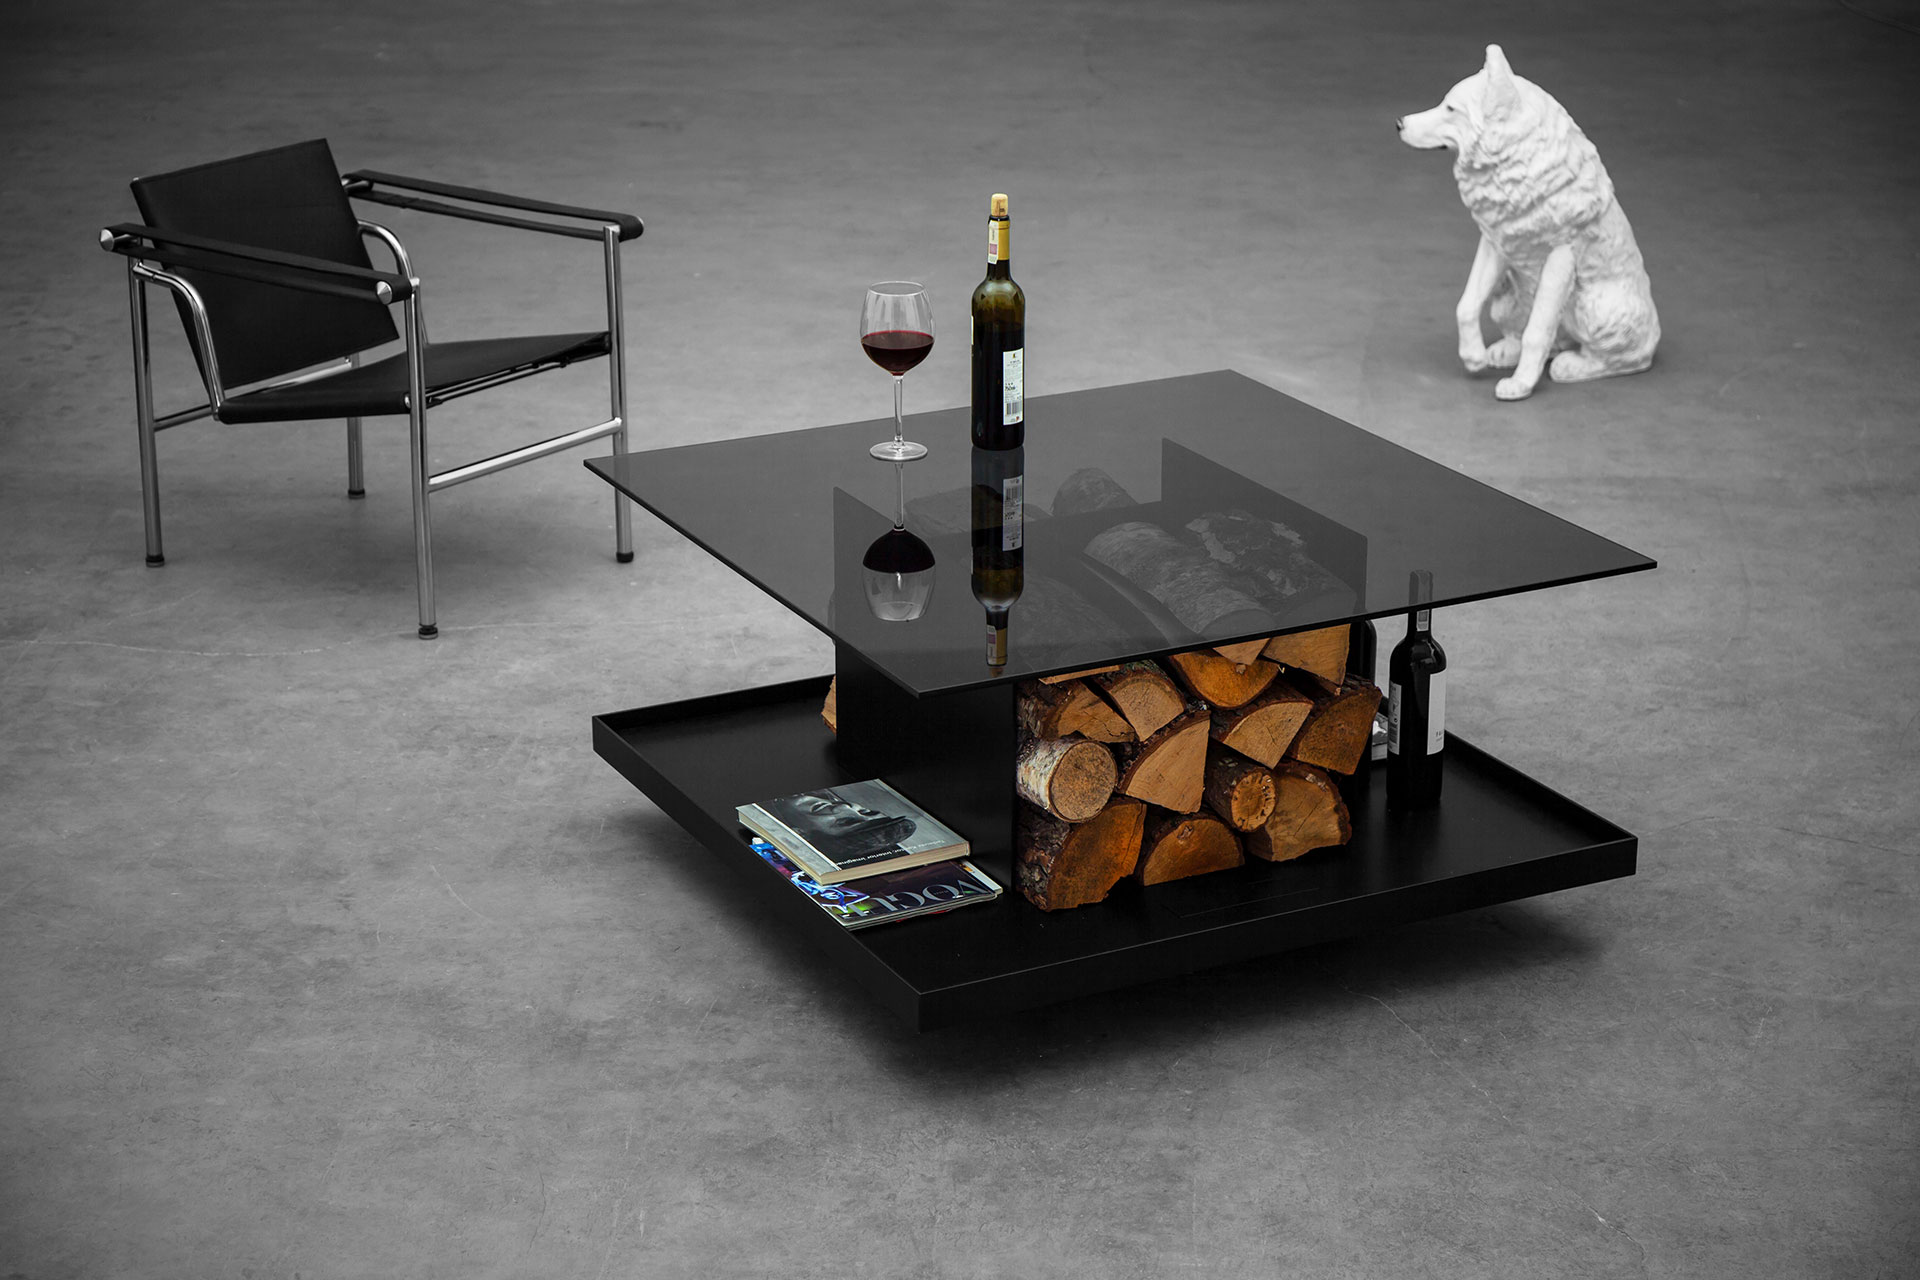 Outdoor indoor coffee table with firewood storage inspired by minimalism style